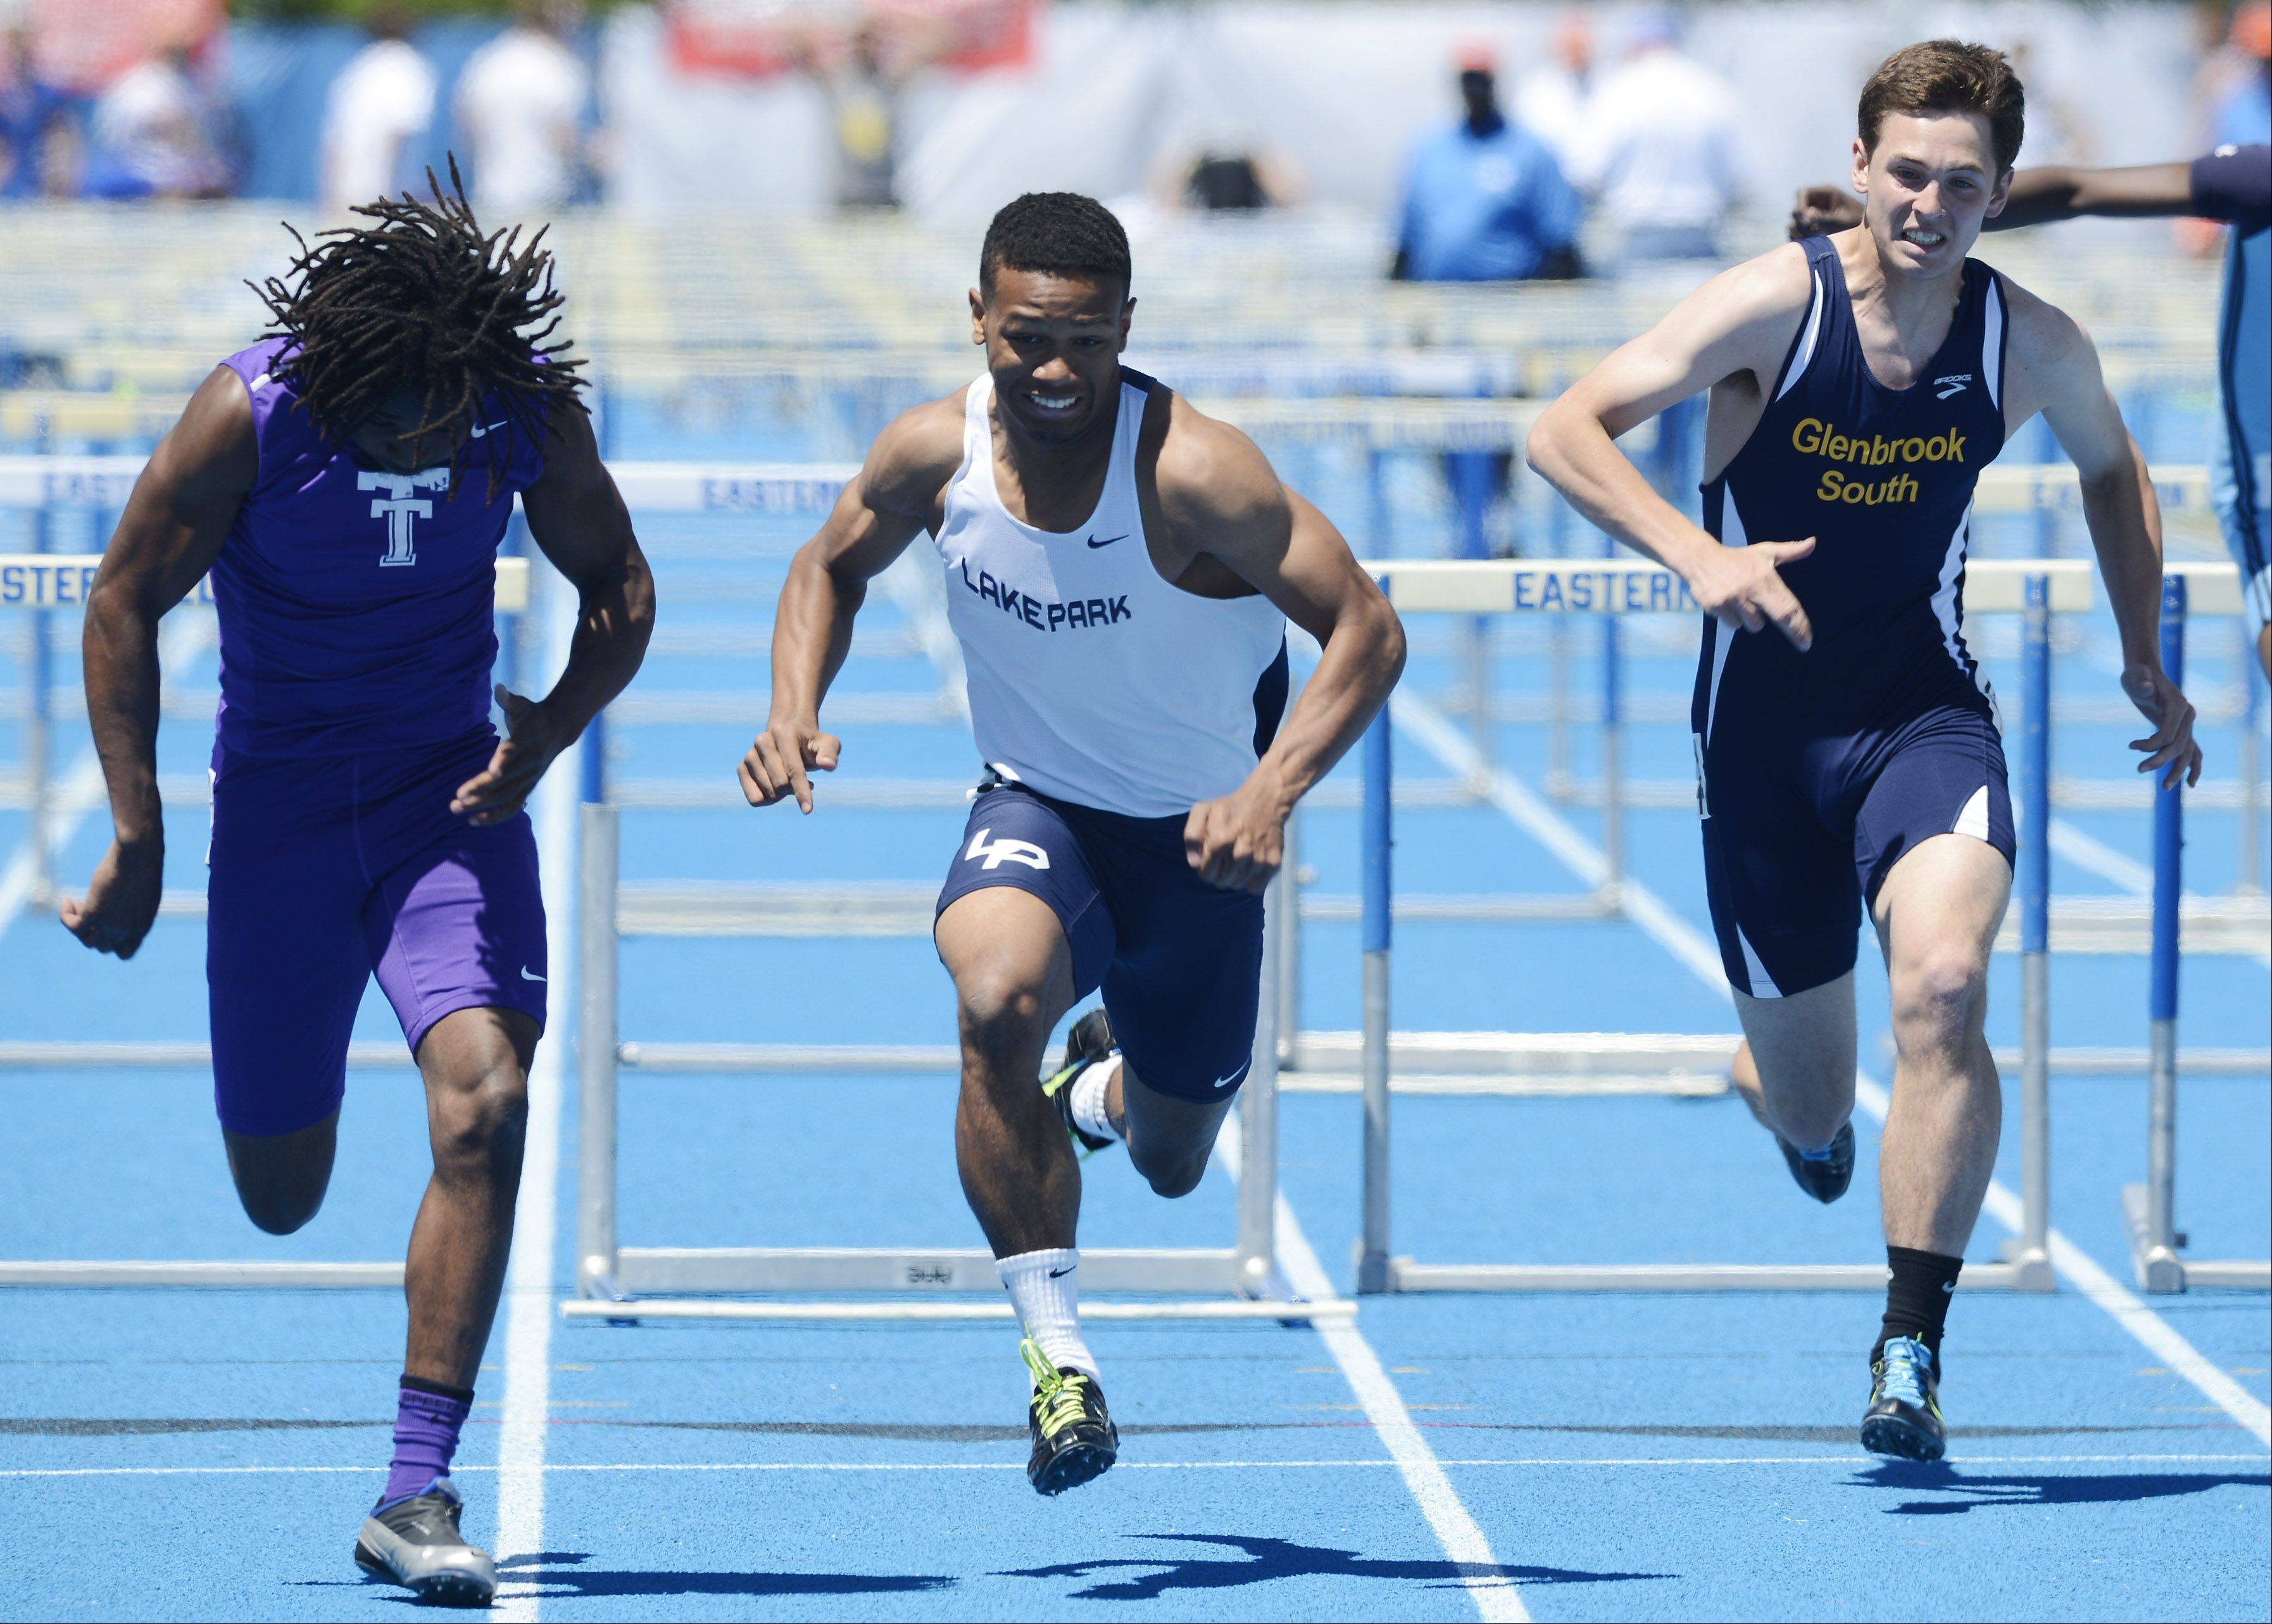 Antonio Shenault of Lake Park, middle, heads for the finish line in the Class 3A 110-meter high hurdles during the boys state track preliminaries in Charleston Friday.